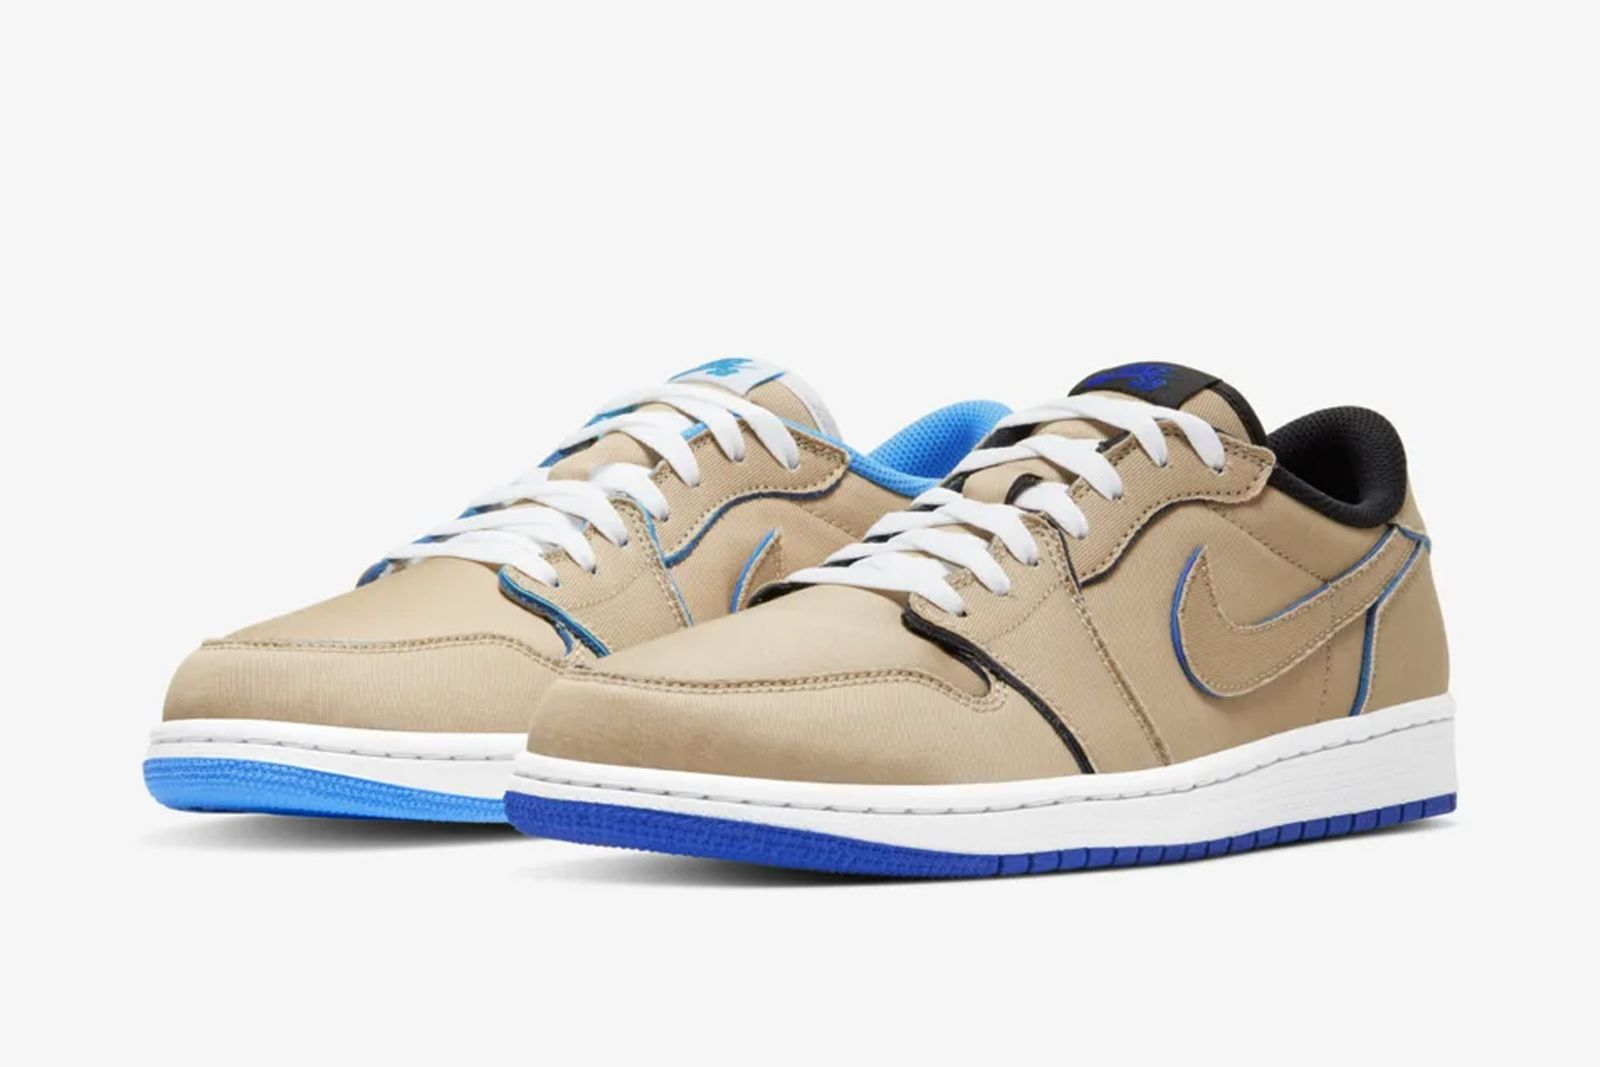 nike-air-jordan-1-low-unc-royal-release-date-price-04